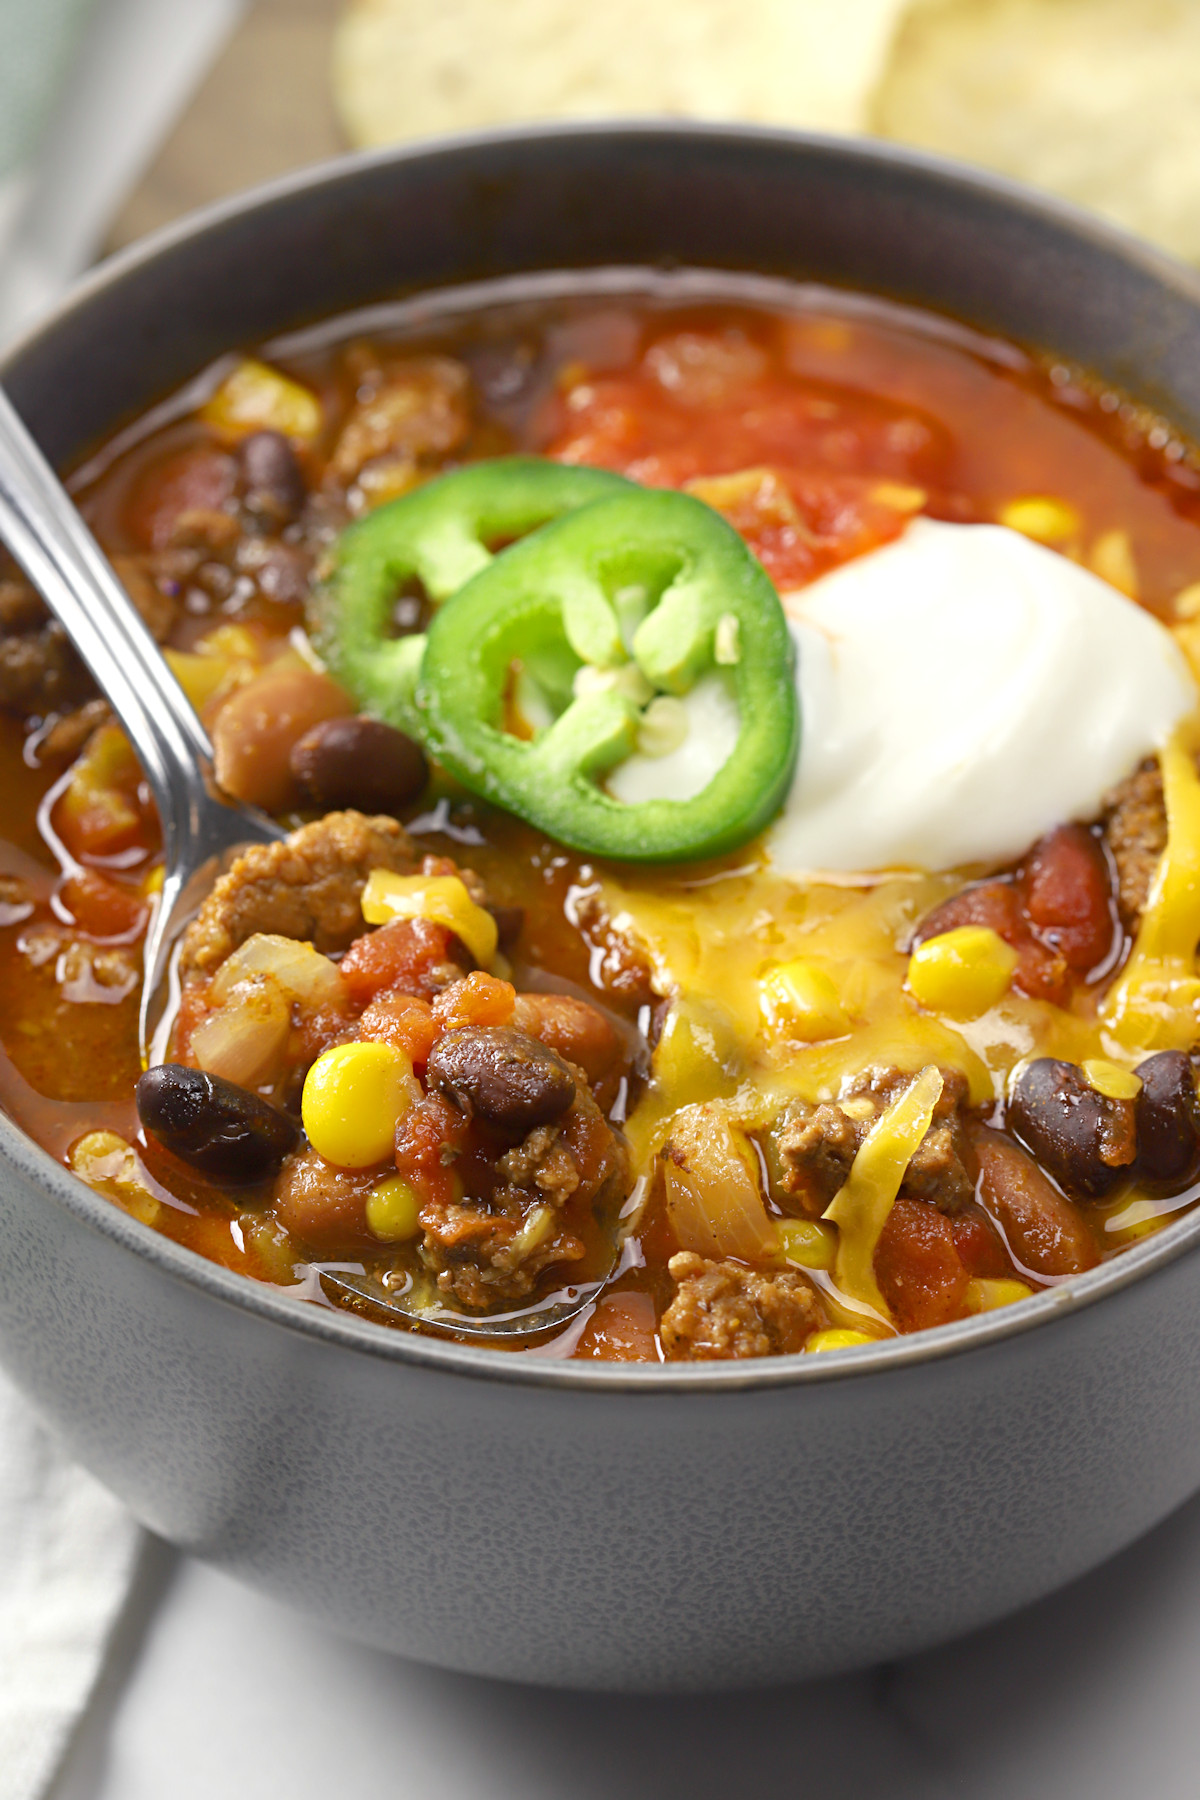 Metal spoon in a bowl of chili.